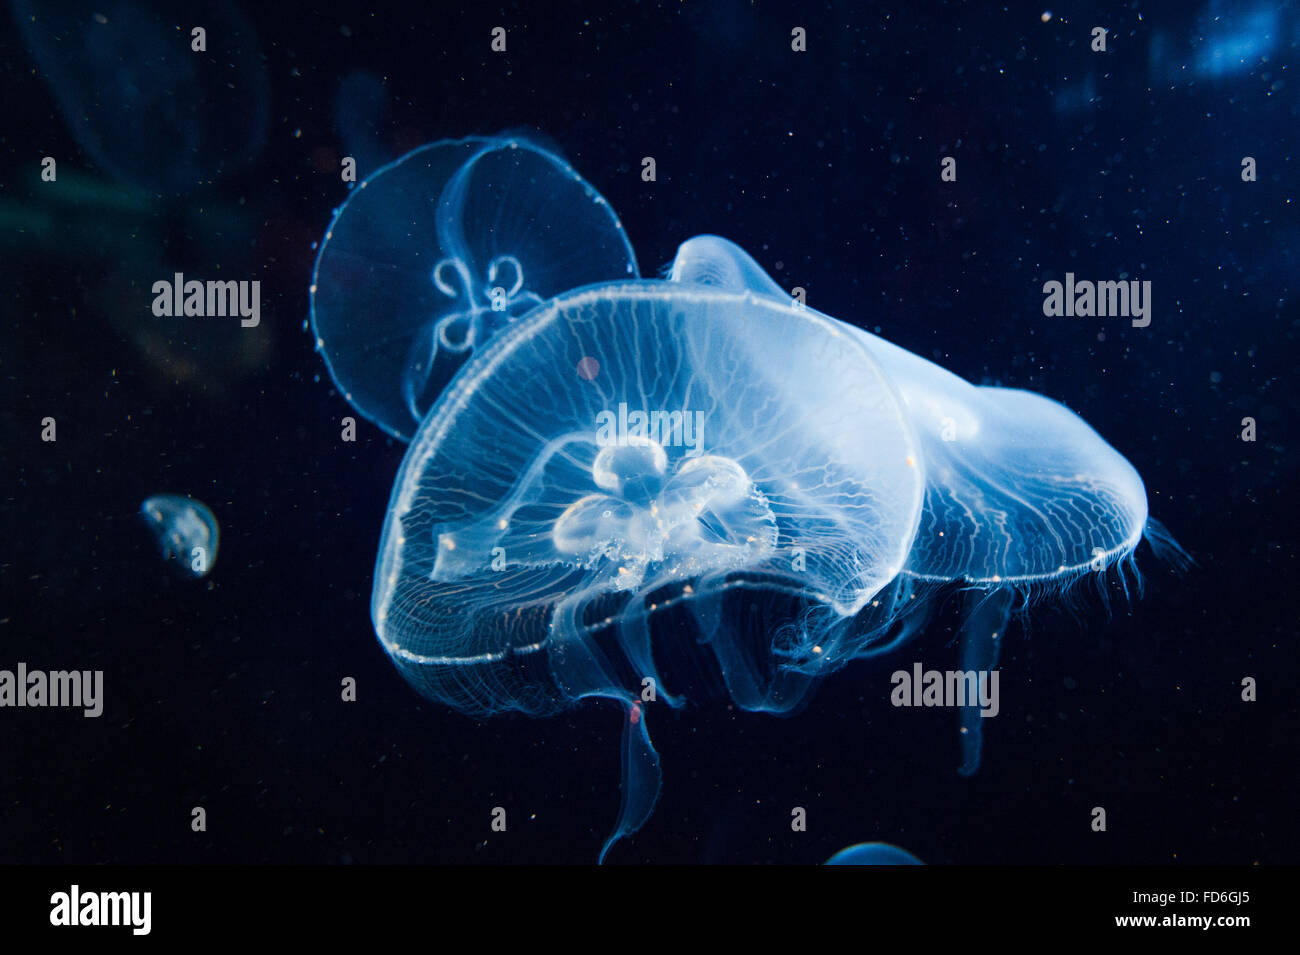 Jellyfish In The Sea - Stock Image